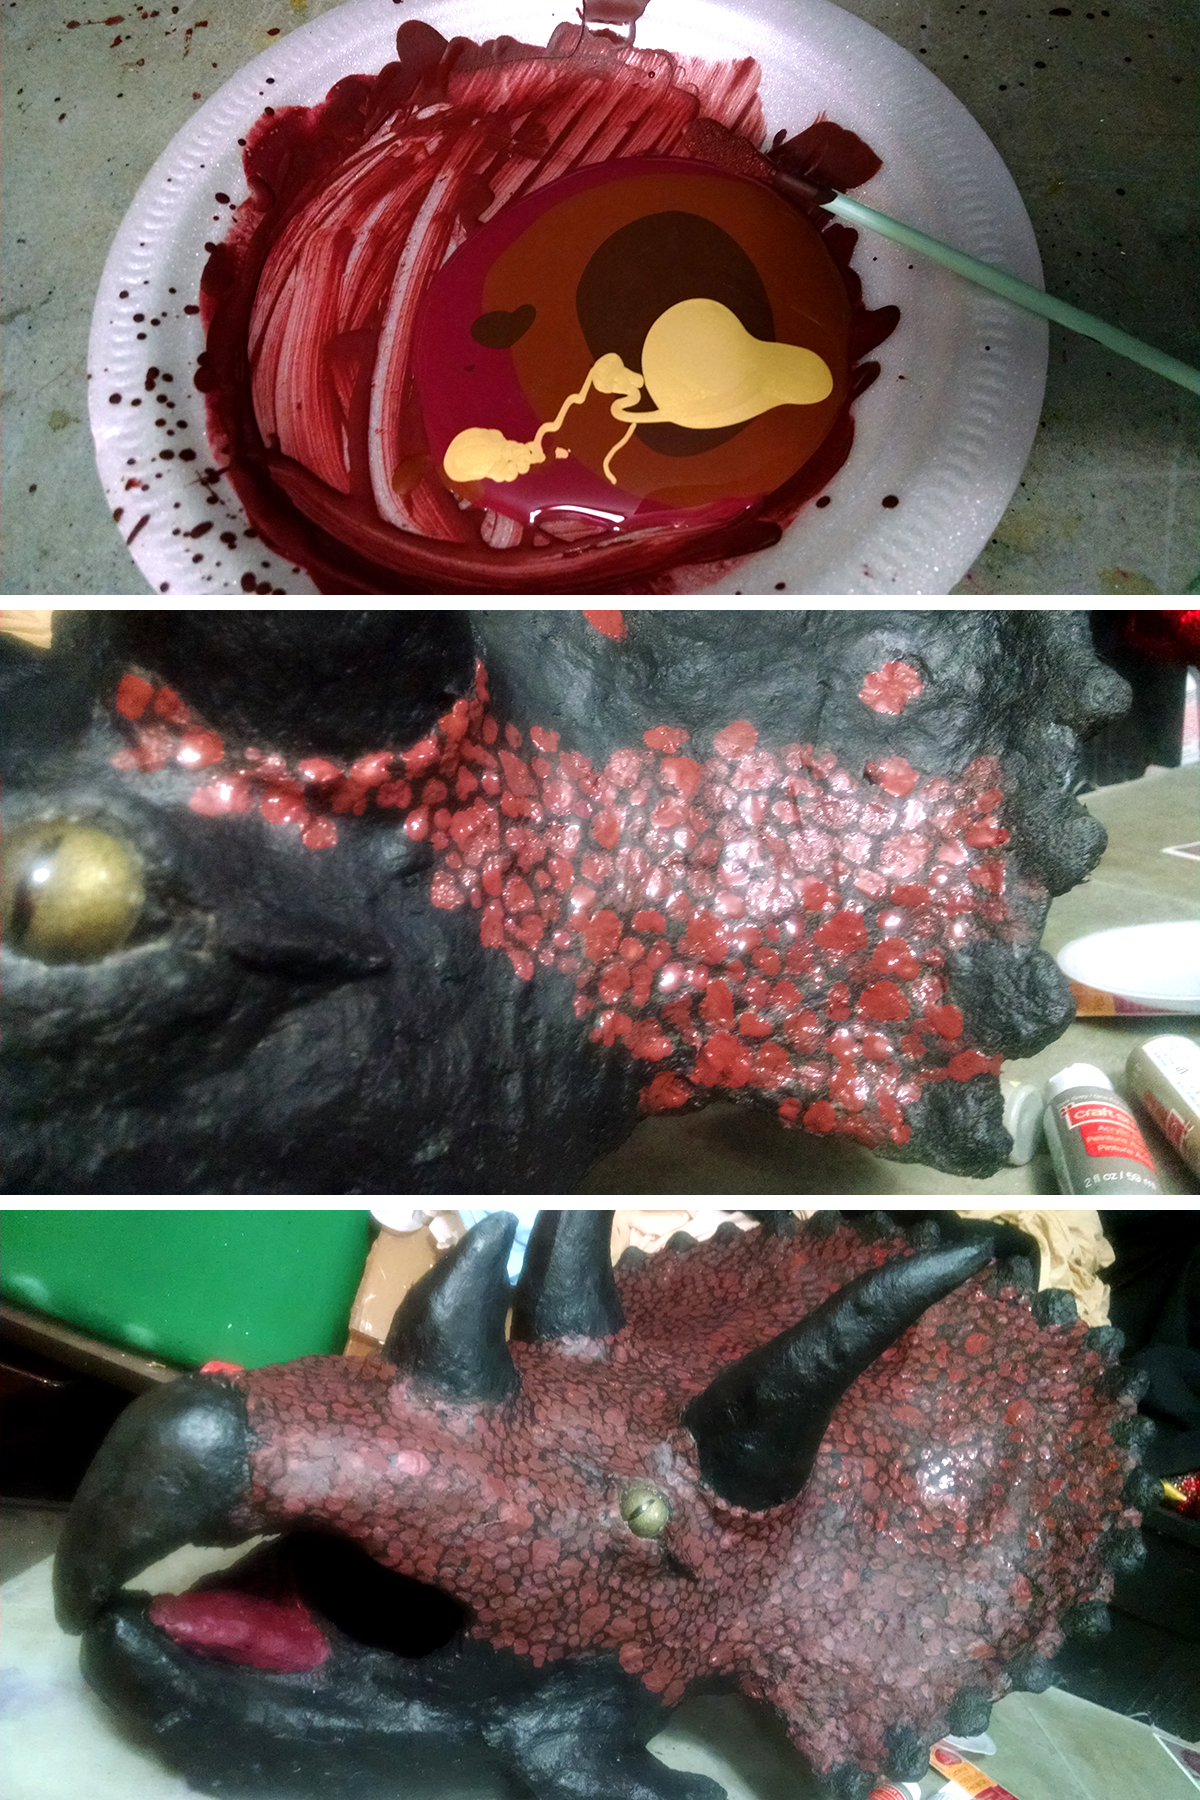 A 3 part image showing paint being mixed and applied to the mask in irregular blobs.